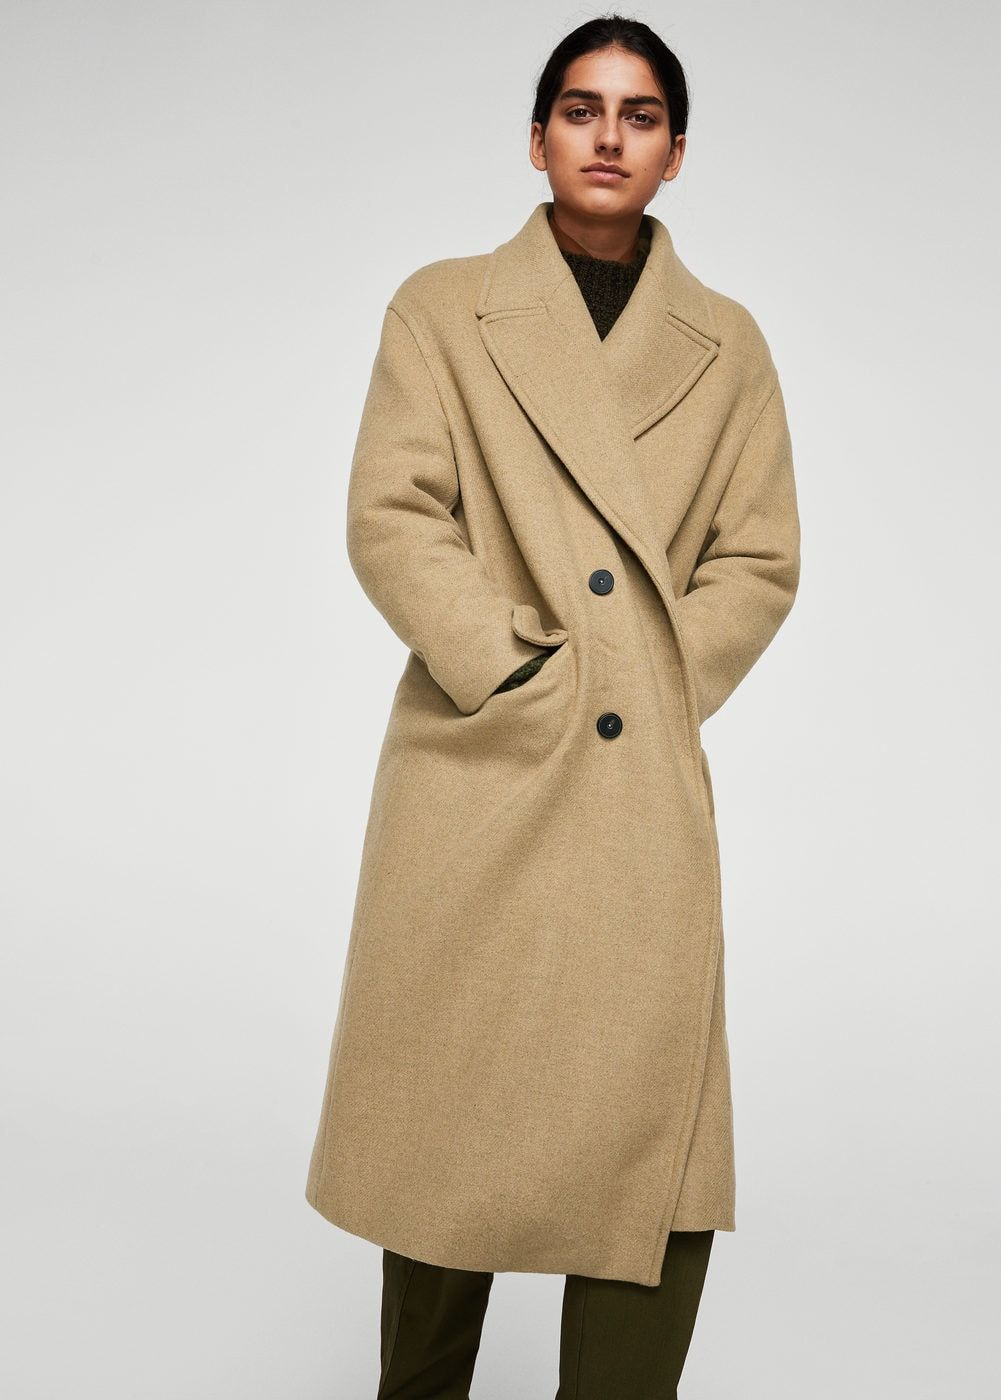 Oversize wool coat - Women   MANGO USA. Oversize wool coat - Women   MANGO  USA Manteau Laine, Femme ... 54b6456a9cbc